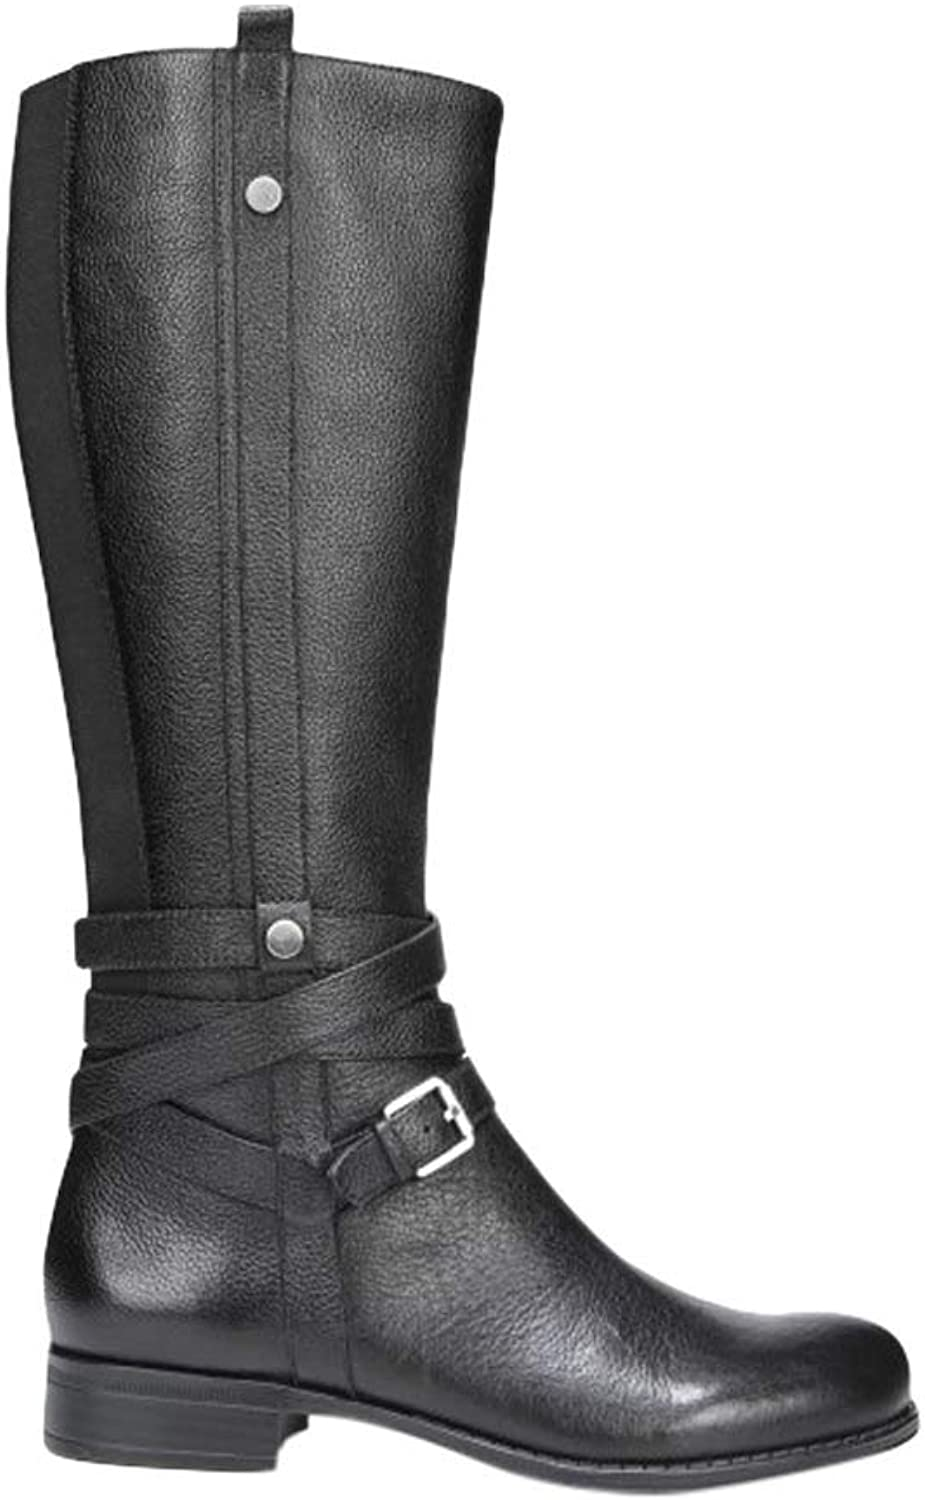 Naturalizer Women's Wide Calf Jango Riding Boot, Black, 8.5 M